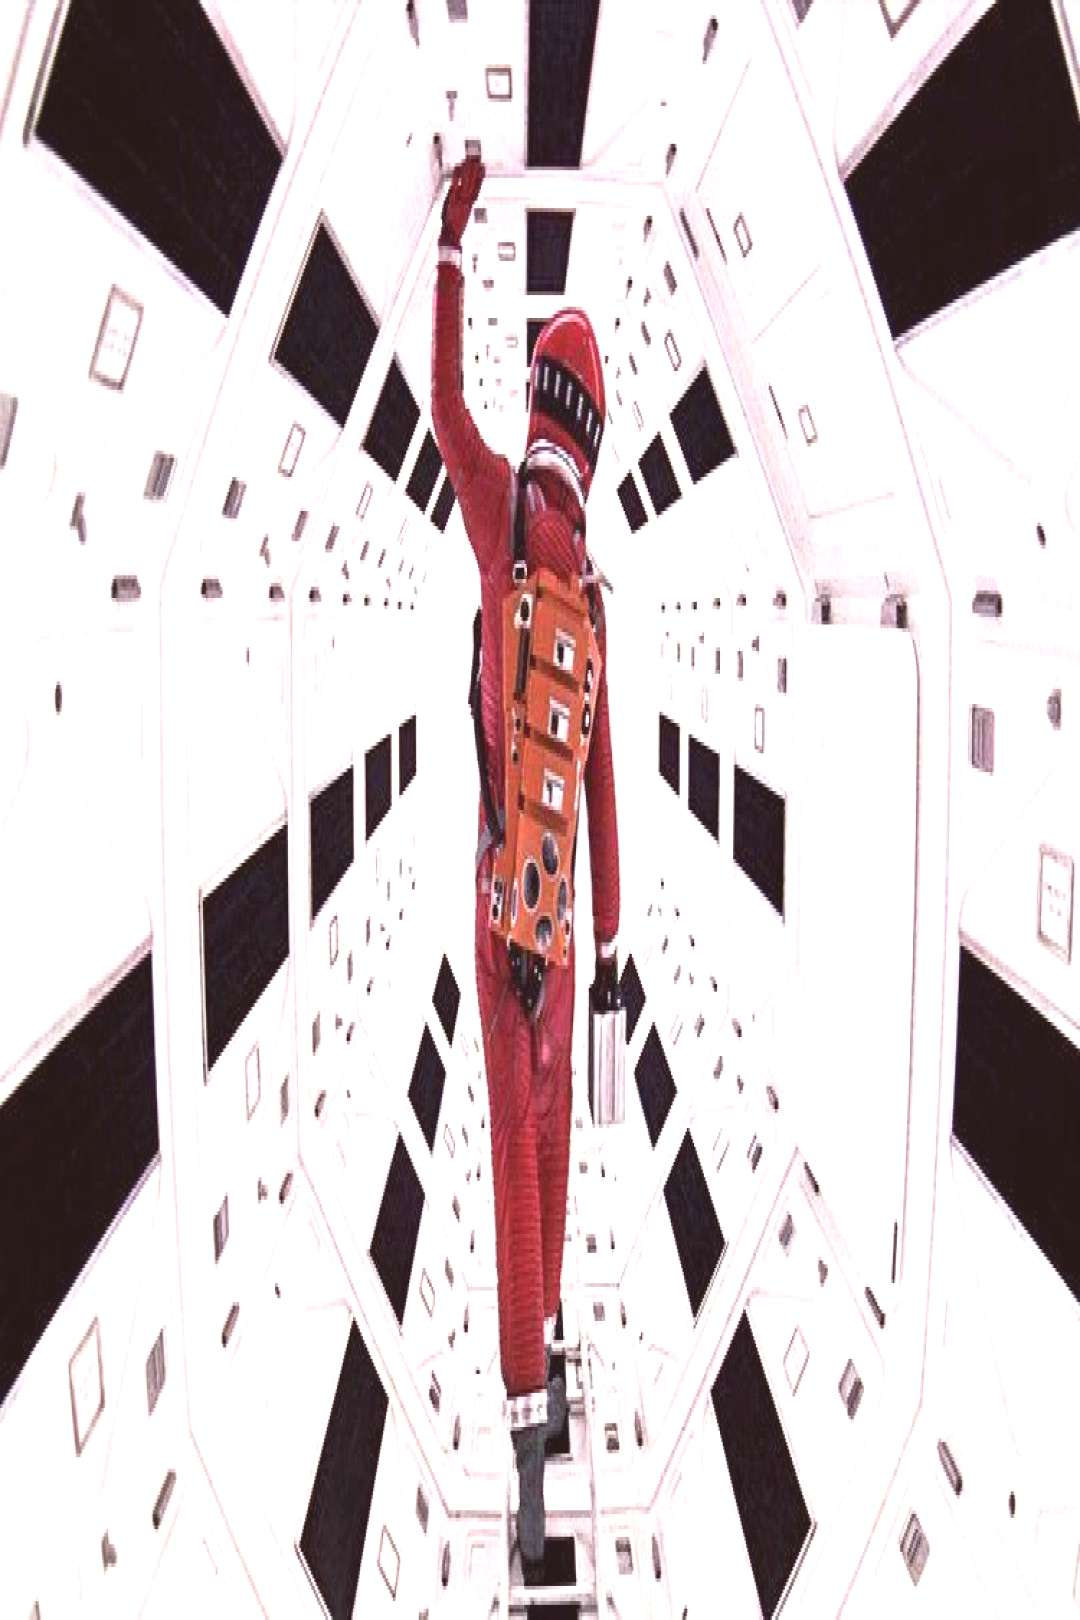 Comics and cartoons      stanley kubrick cinematography 2001 a space odyssey, stanley kubrick artwo